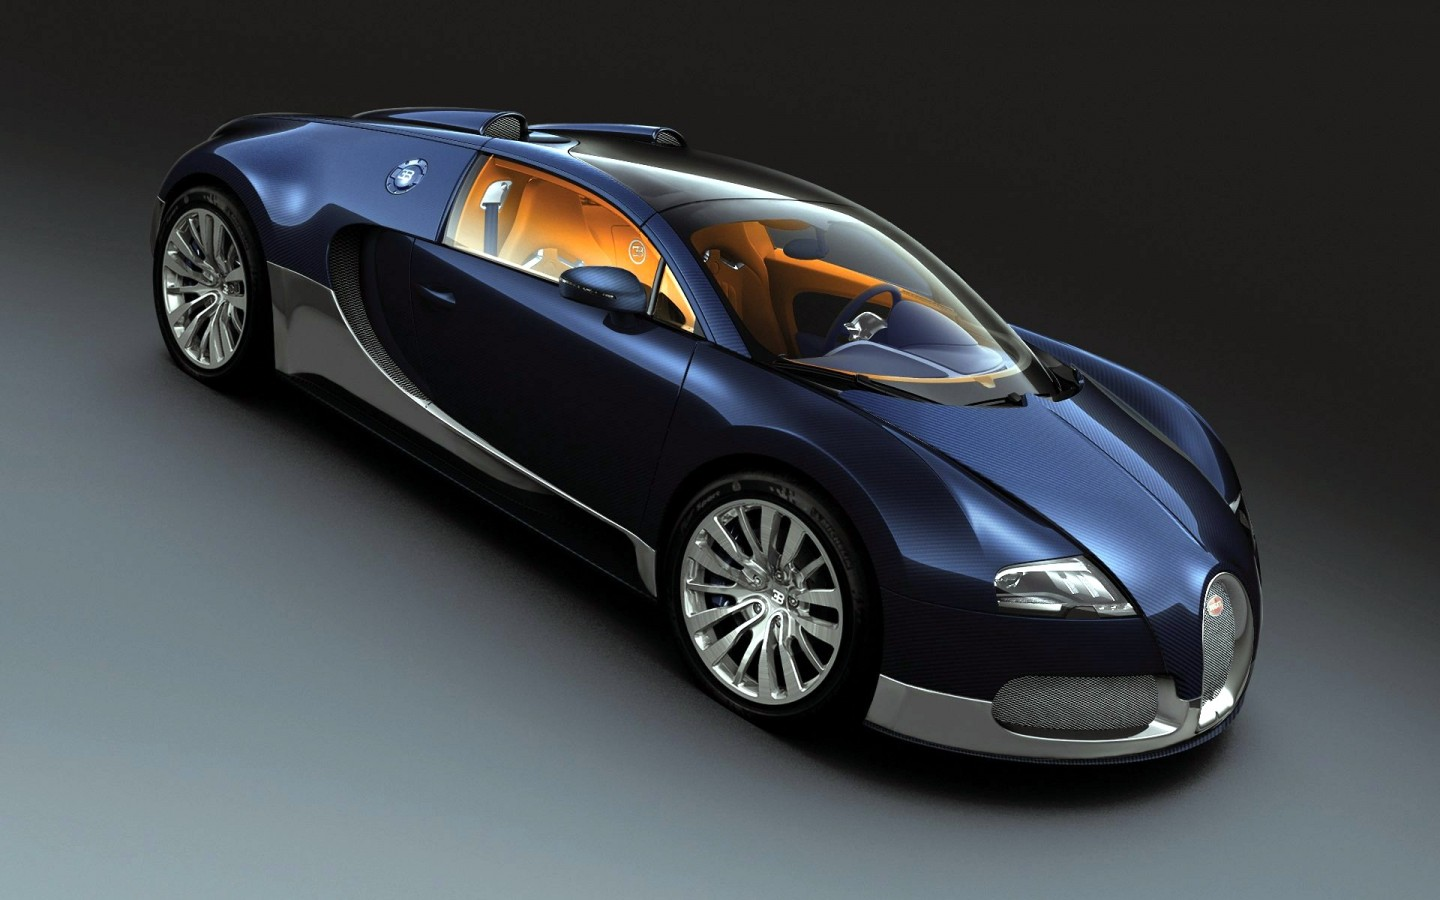 bugatti veyron grand sport 2011 wallpaper hd car wallpapers. Black Bedroom Furniture Sets. Home Design Ideas